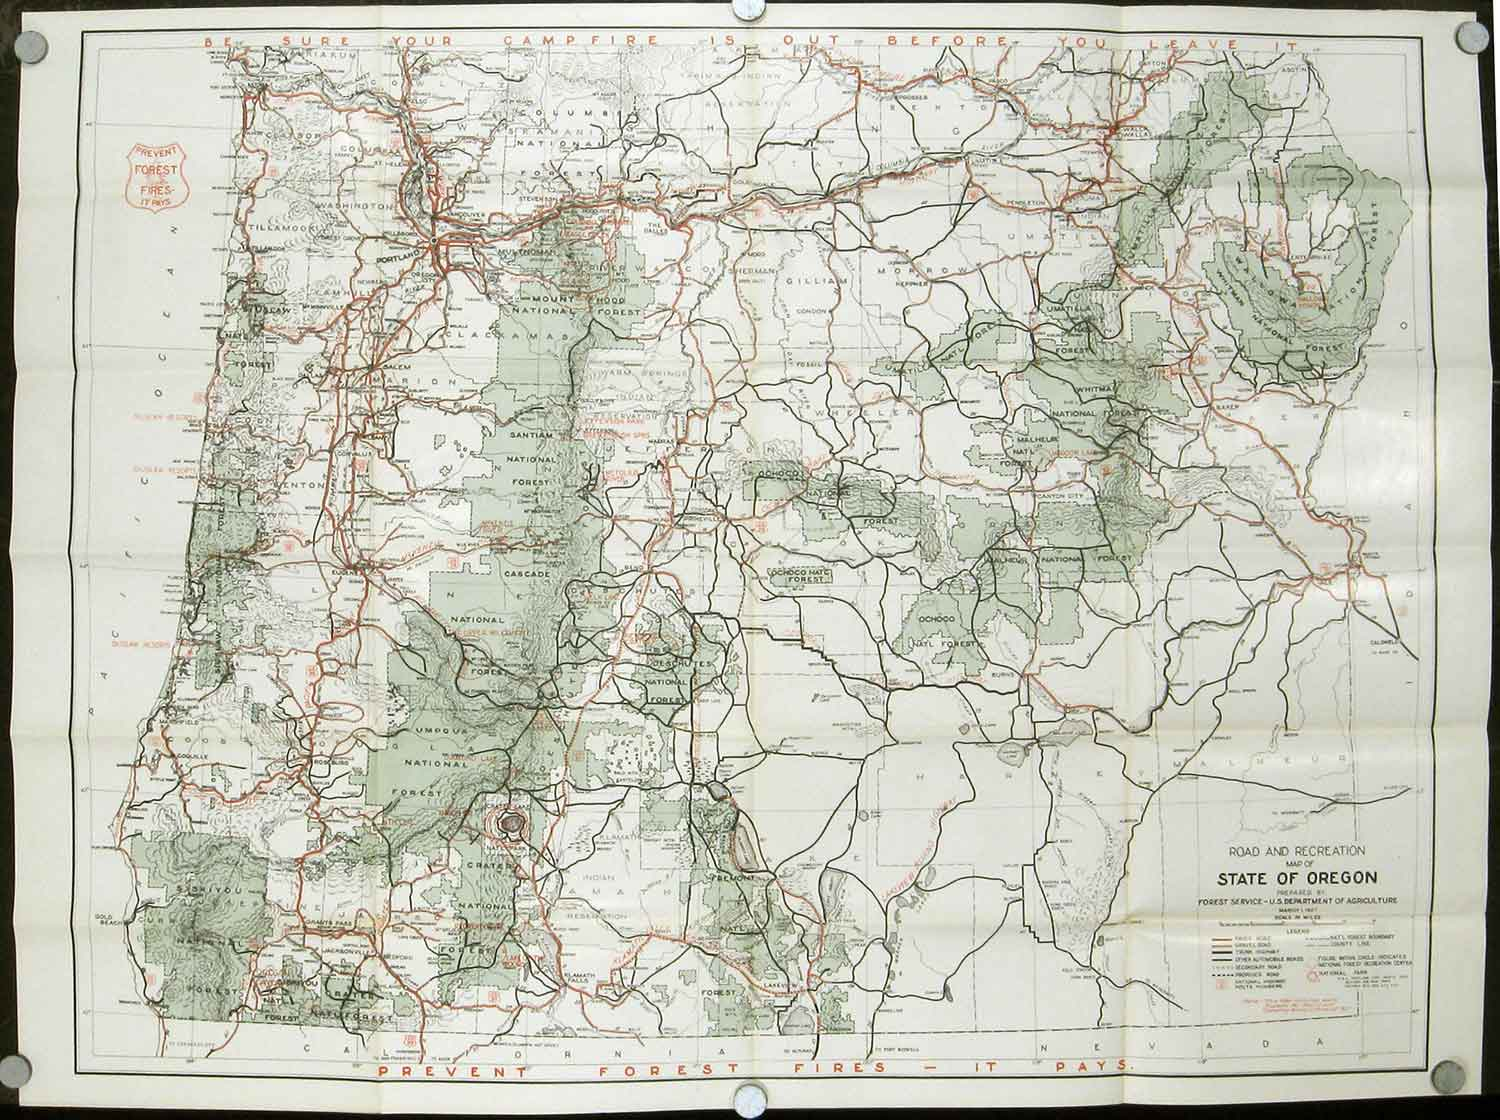 Road And Information Map For The National Forests Of Oregon US - Us forest service road maps